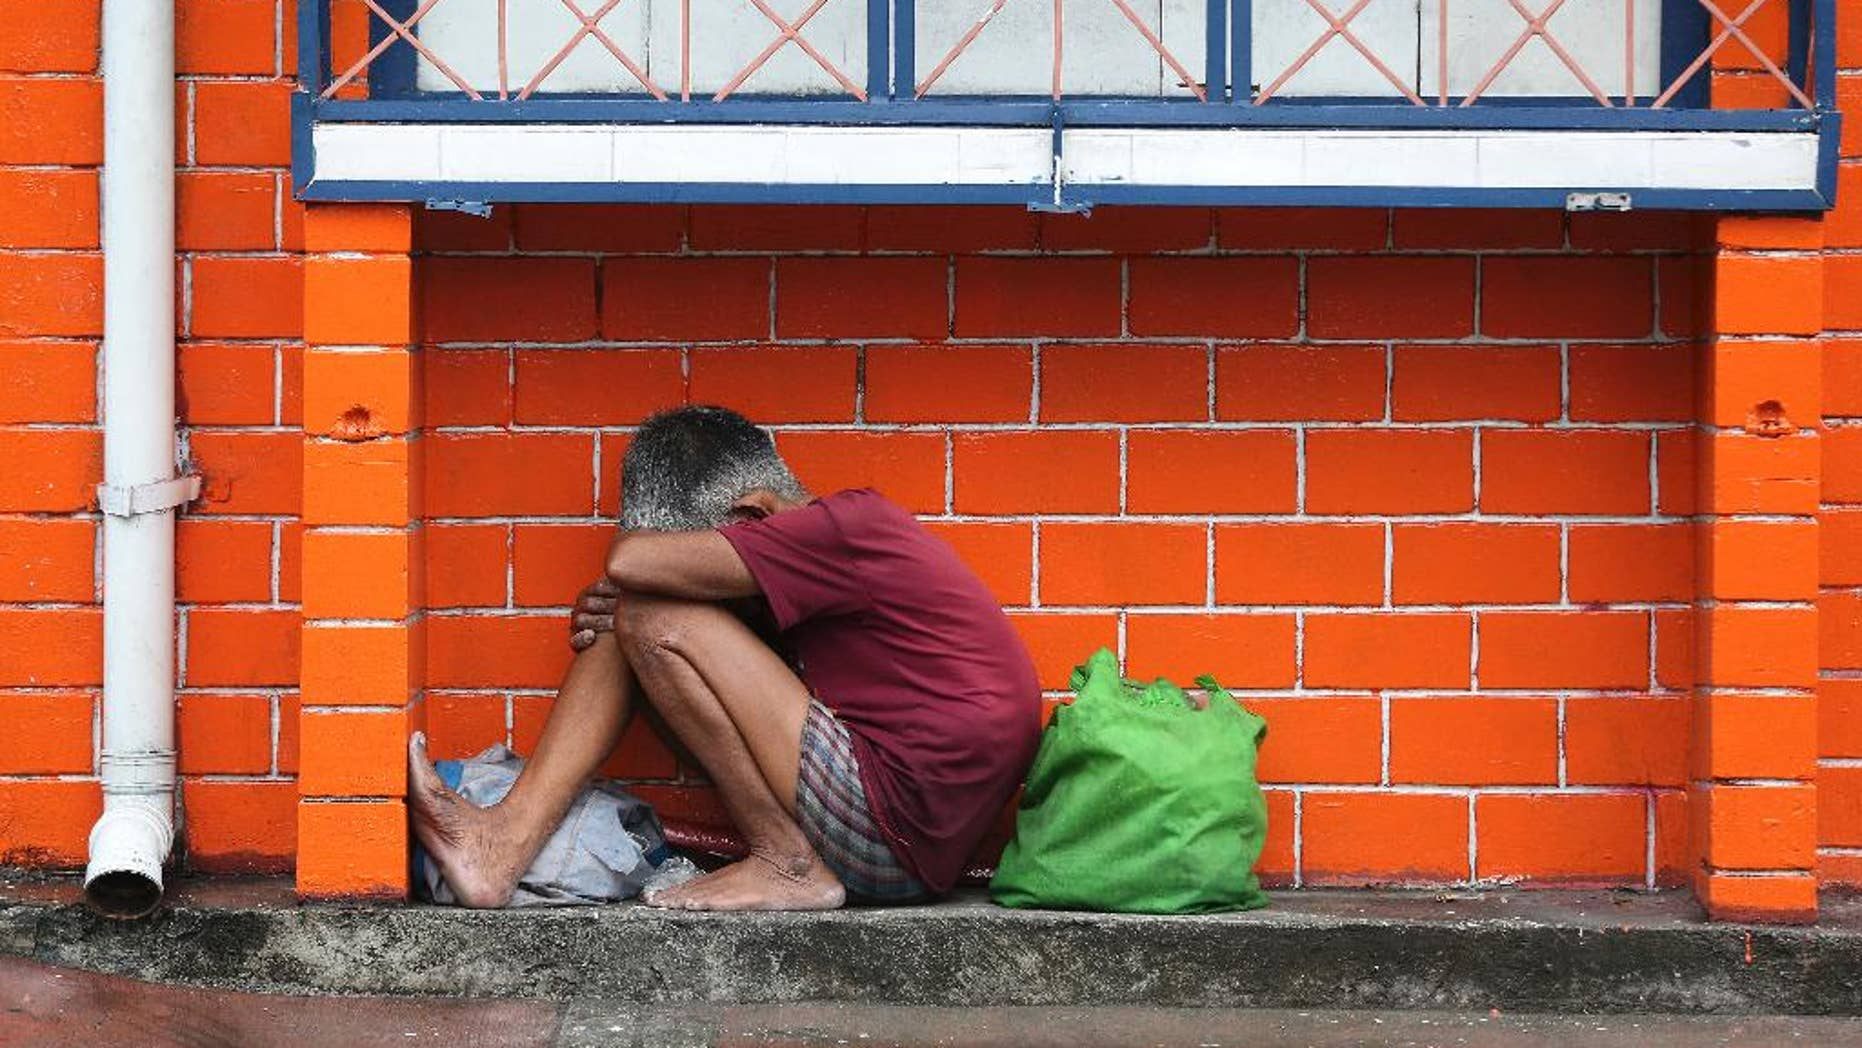 A Filipino woman takes shelter from rain caused by Typhoon Melor as the lowest level storm signal warning has been raised in Manila, Philippines Tuesday, Dec. 15, 2015. Typhoon Melor weakened Tuesday as it crossed over the central Philippines, leaving one man dead and wide areas without power. (AP Photo/Aaron Favila)